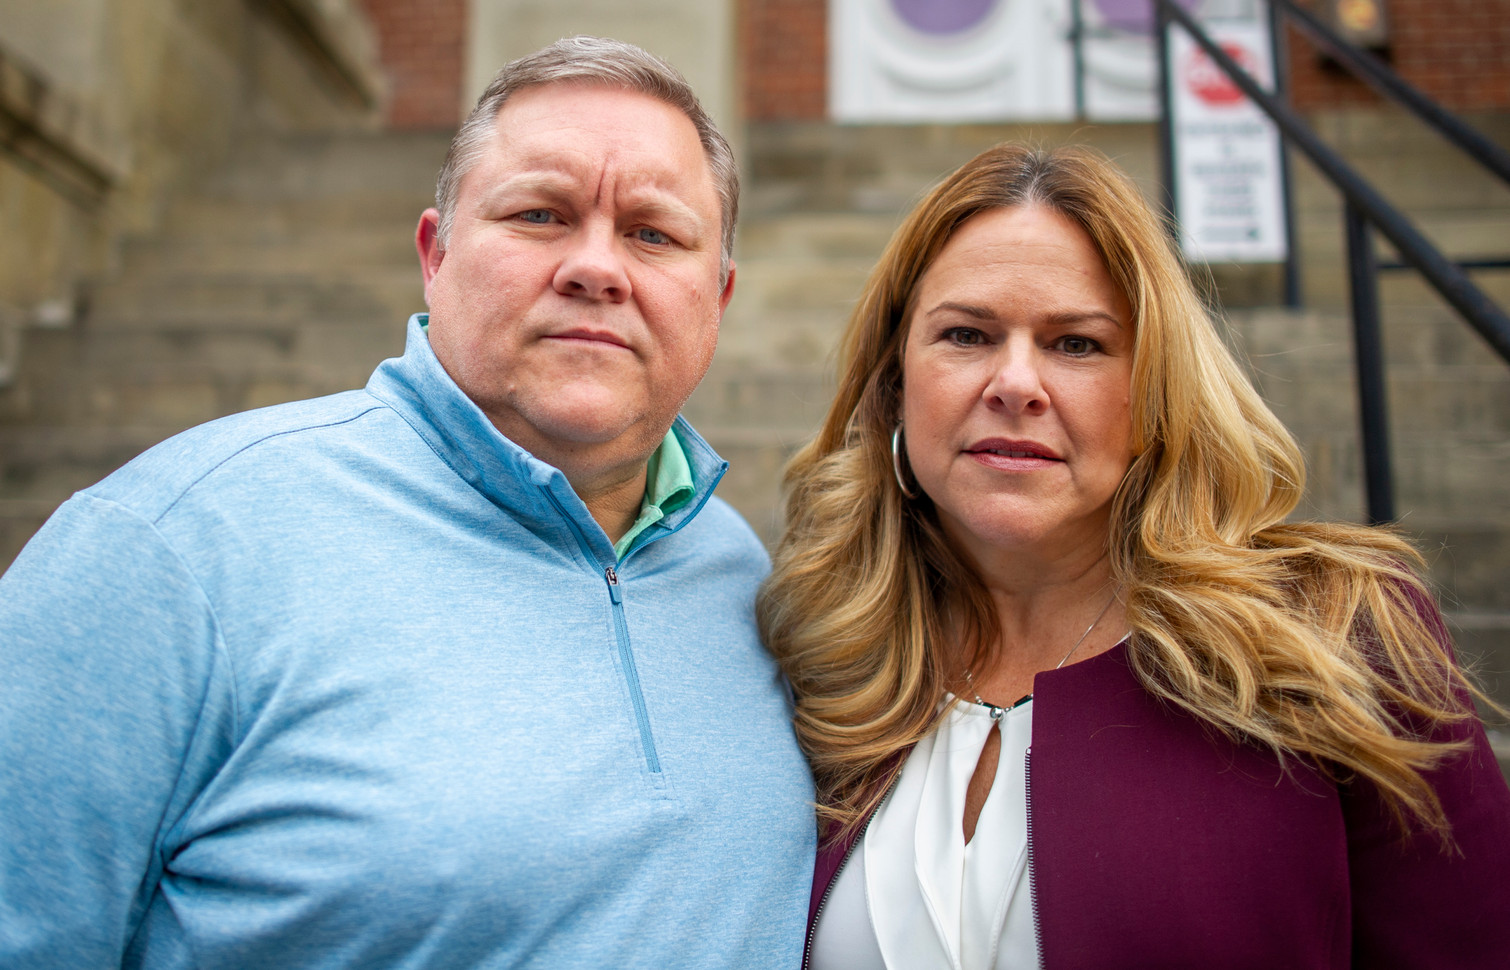 Wade and Kathleen Wiant, parents of Collin Wiant, a freshman at Ohio University who died after collapsing at his fraternity's annex house in November 2018, pose for a portrait after the initial hearing of some of Collin's fraternity brothers in Athens, Ohio.